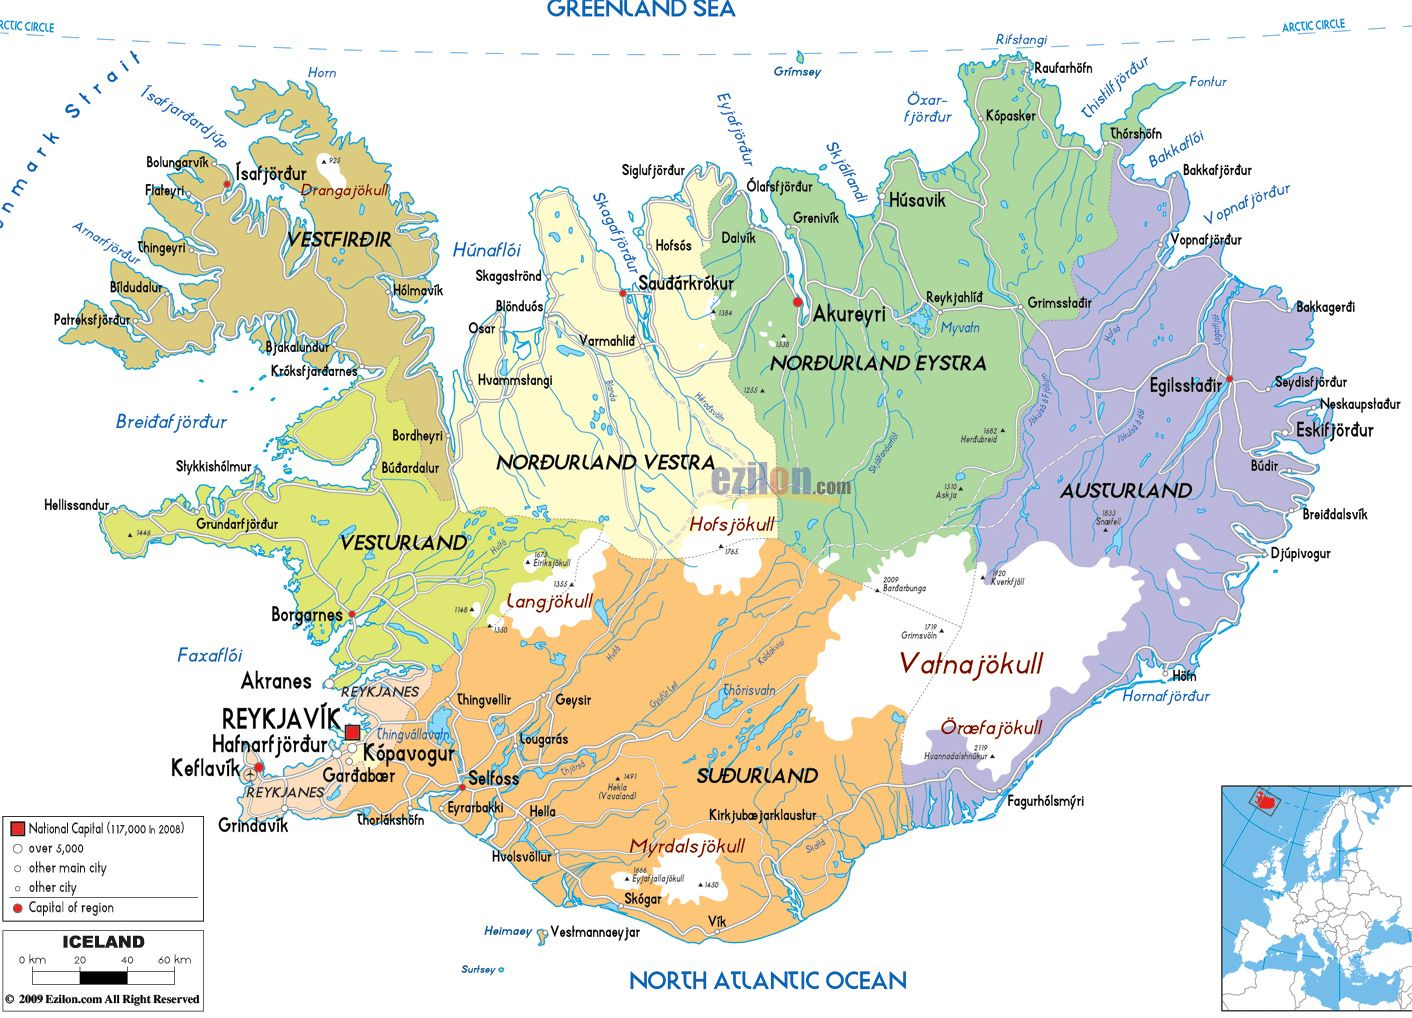 Detailed political and administrative map of Iceland with roads